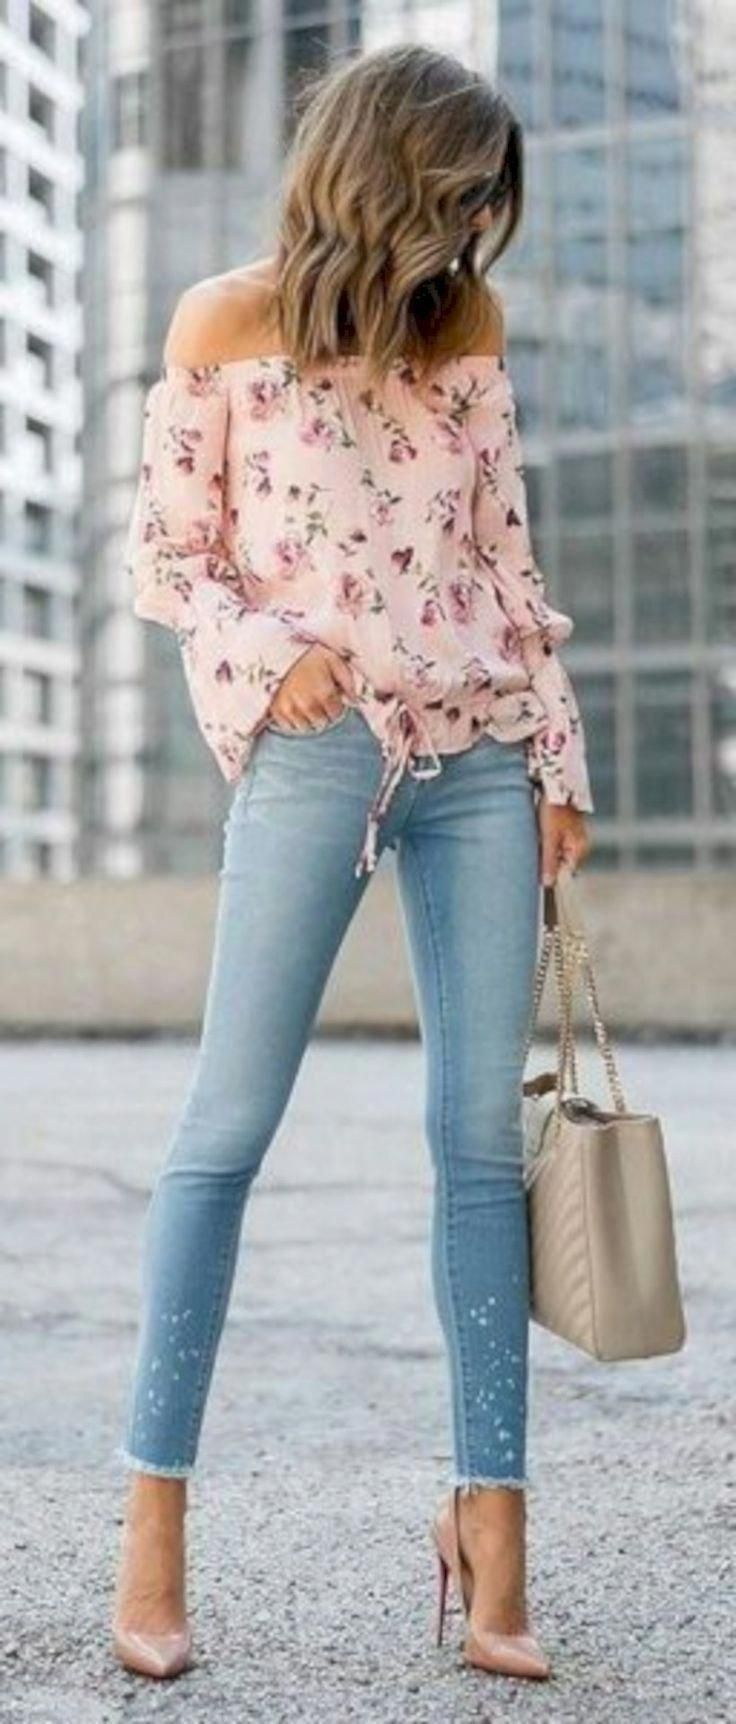 30+ Summer Fashion Ideas For Spring Outfits 2019 #summer